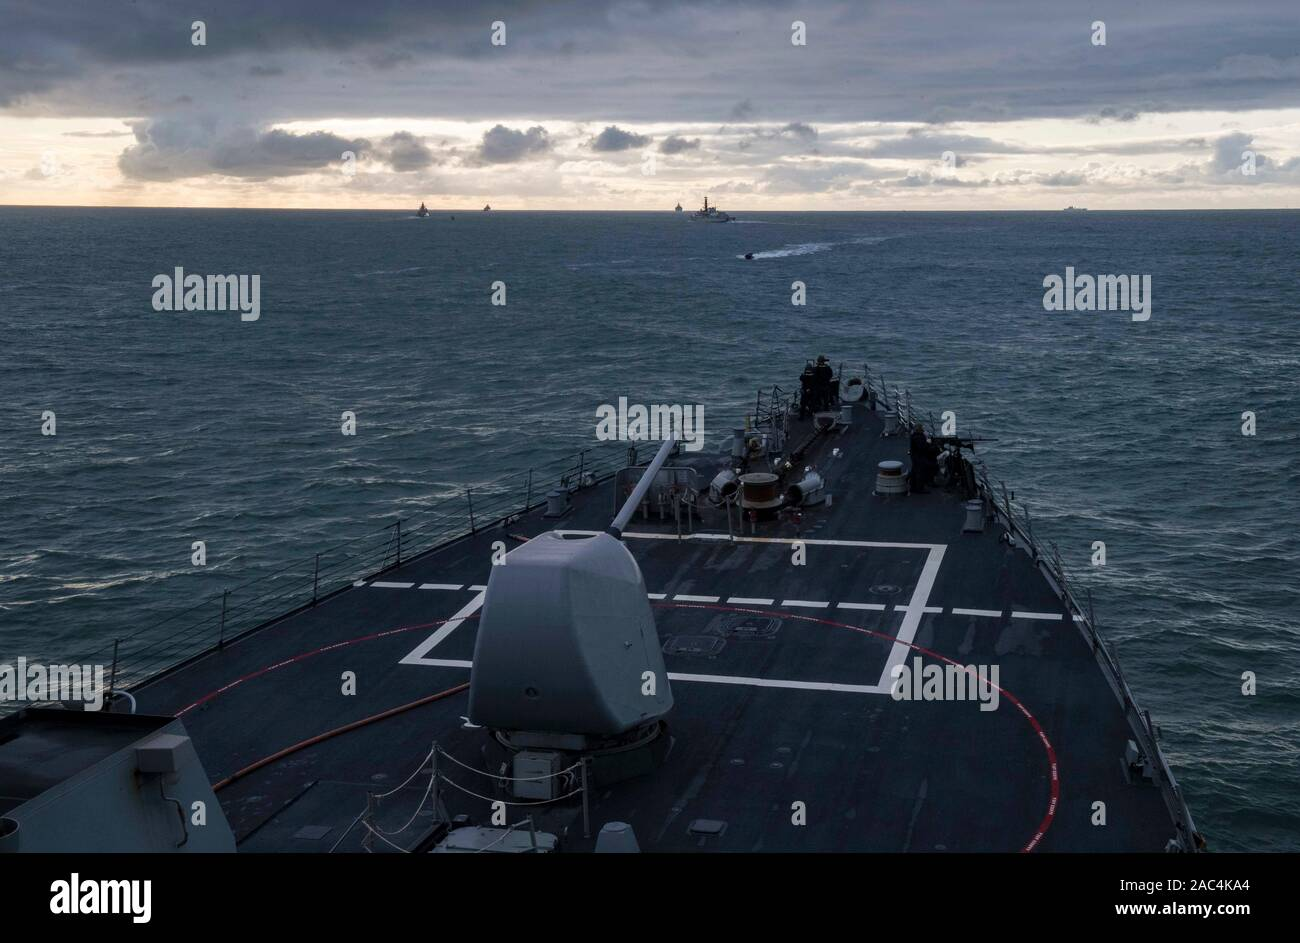 191128-N-TI693-1108    ATLANTIC OCEAN (Nov. 28, 2019) - Sailors man .50-caliber machine guns on the forecastle aboard the Arleigh Burke-class guided-missile destroyer USS Carney (DDG 64) in response to an incoming (simulated) hostile small craft as part of the small caliber arms team during the U.K.-led Flag Officer Sea Training (FOST), Nov. 28, 2019. FOST's training is designed to prepare all types of navy vessels and auxiliaries for peacetime, peace-support, and war-fighting operations. Carney, forward-deployed to Rota, Spain, is on its seventh patrol in the U.S. 6th Fleet area of operations Stock Photo